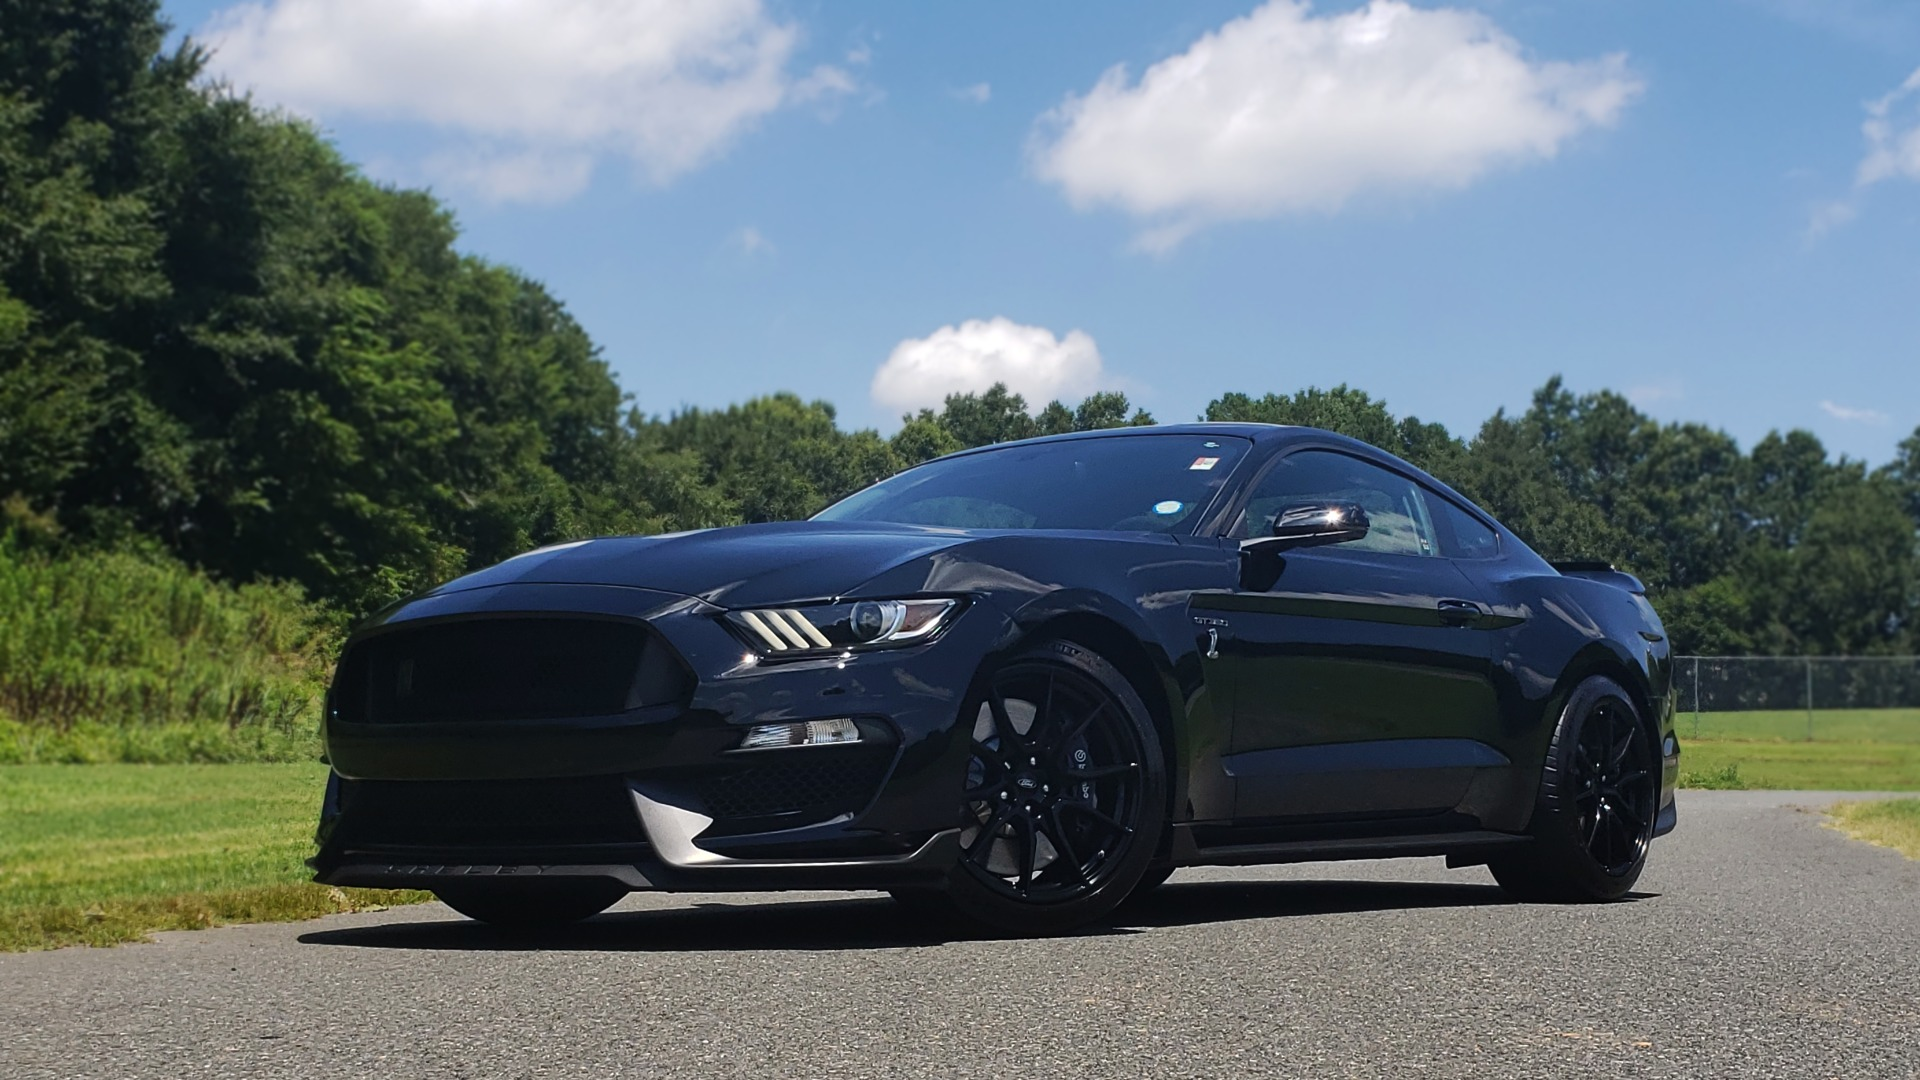 Used 2019 Ford MUSTANG SHELBY GT350 COUPE / TECH PKG / B&O SND / NAV / HNDLNG PKG / REARVIEW for sale Sold at Formula Imports in Charlotte NC 28227 3